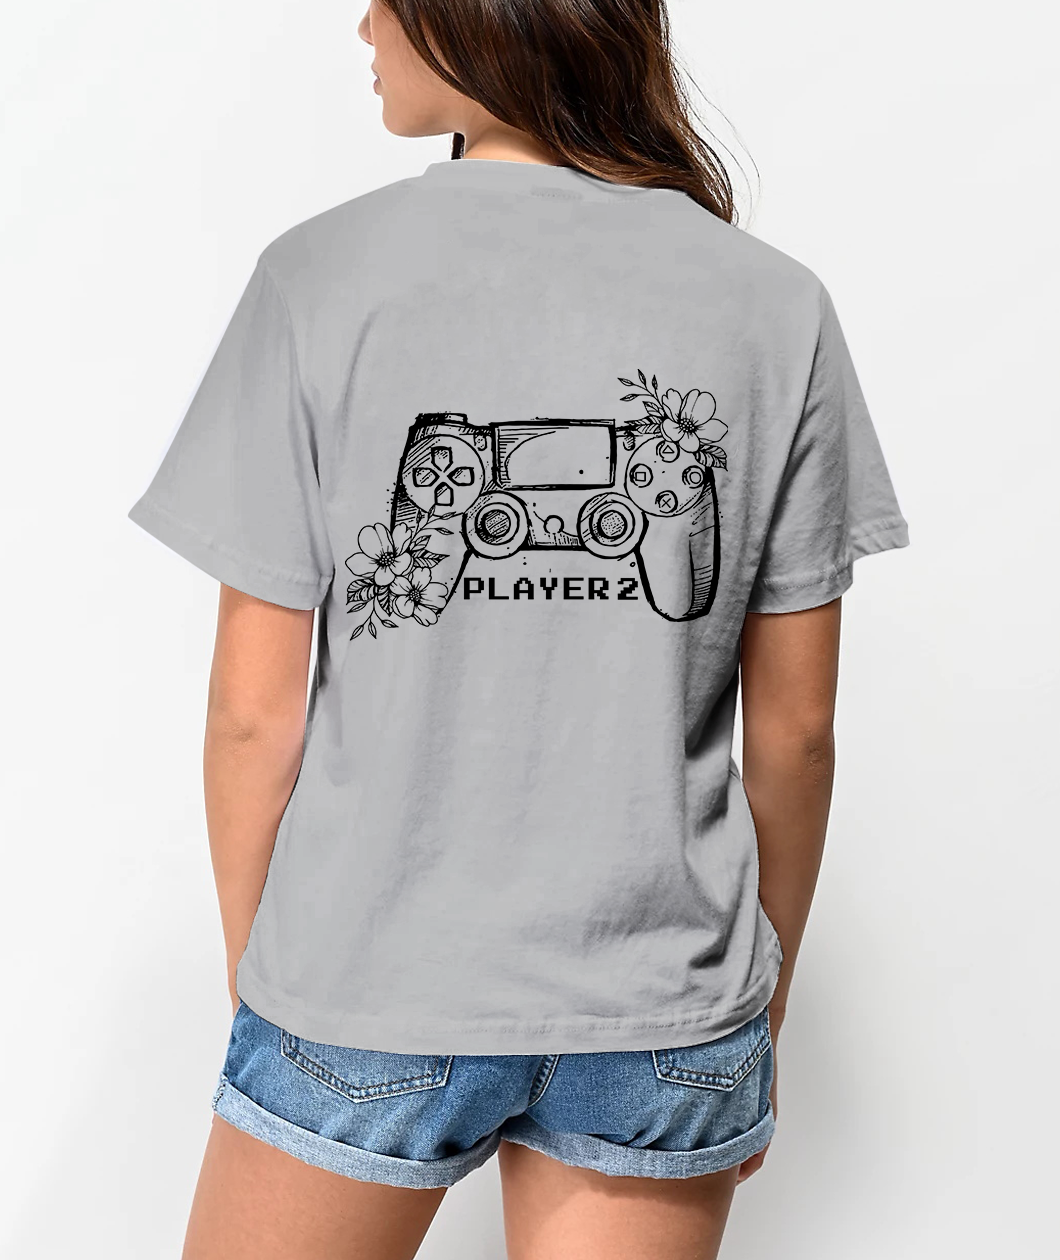 Player1 Player2 Couple T-Shirts